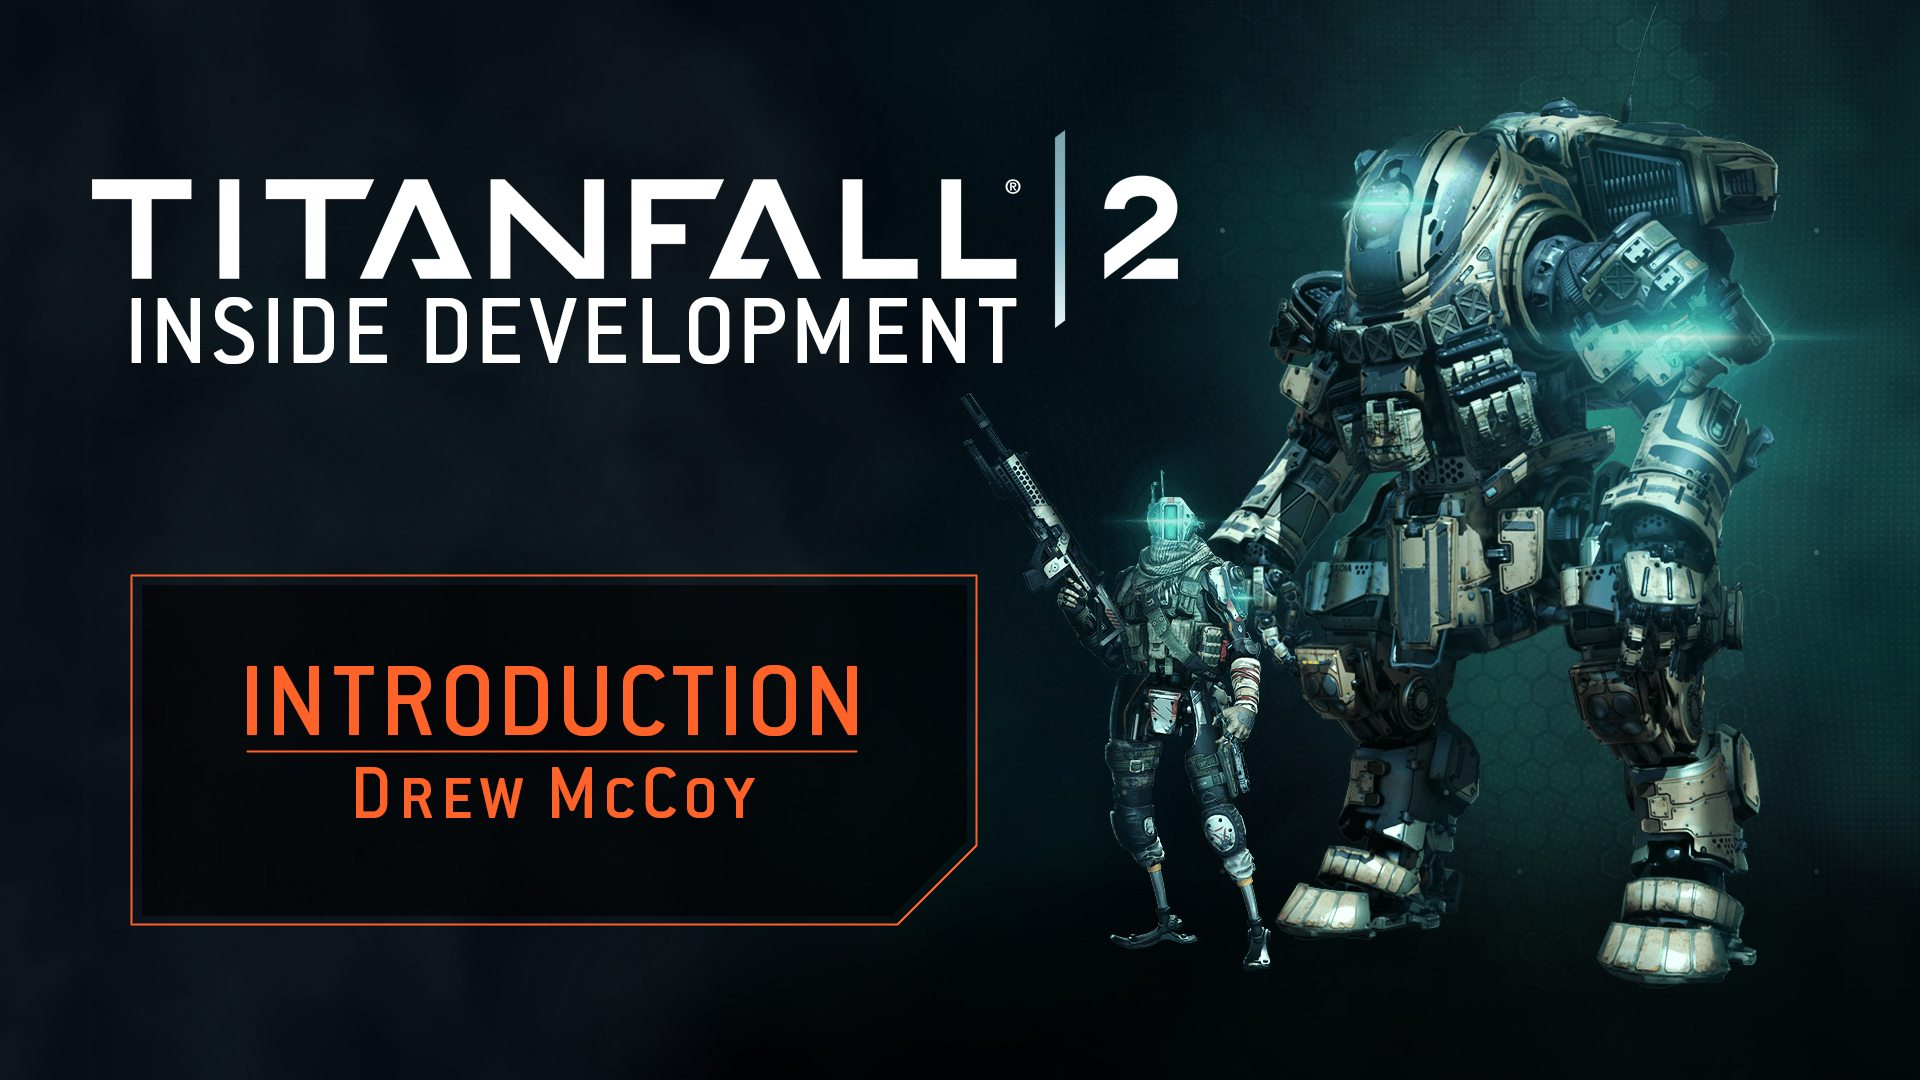 Titanfall 2 New Inside Development Series Video